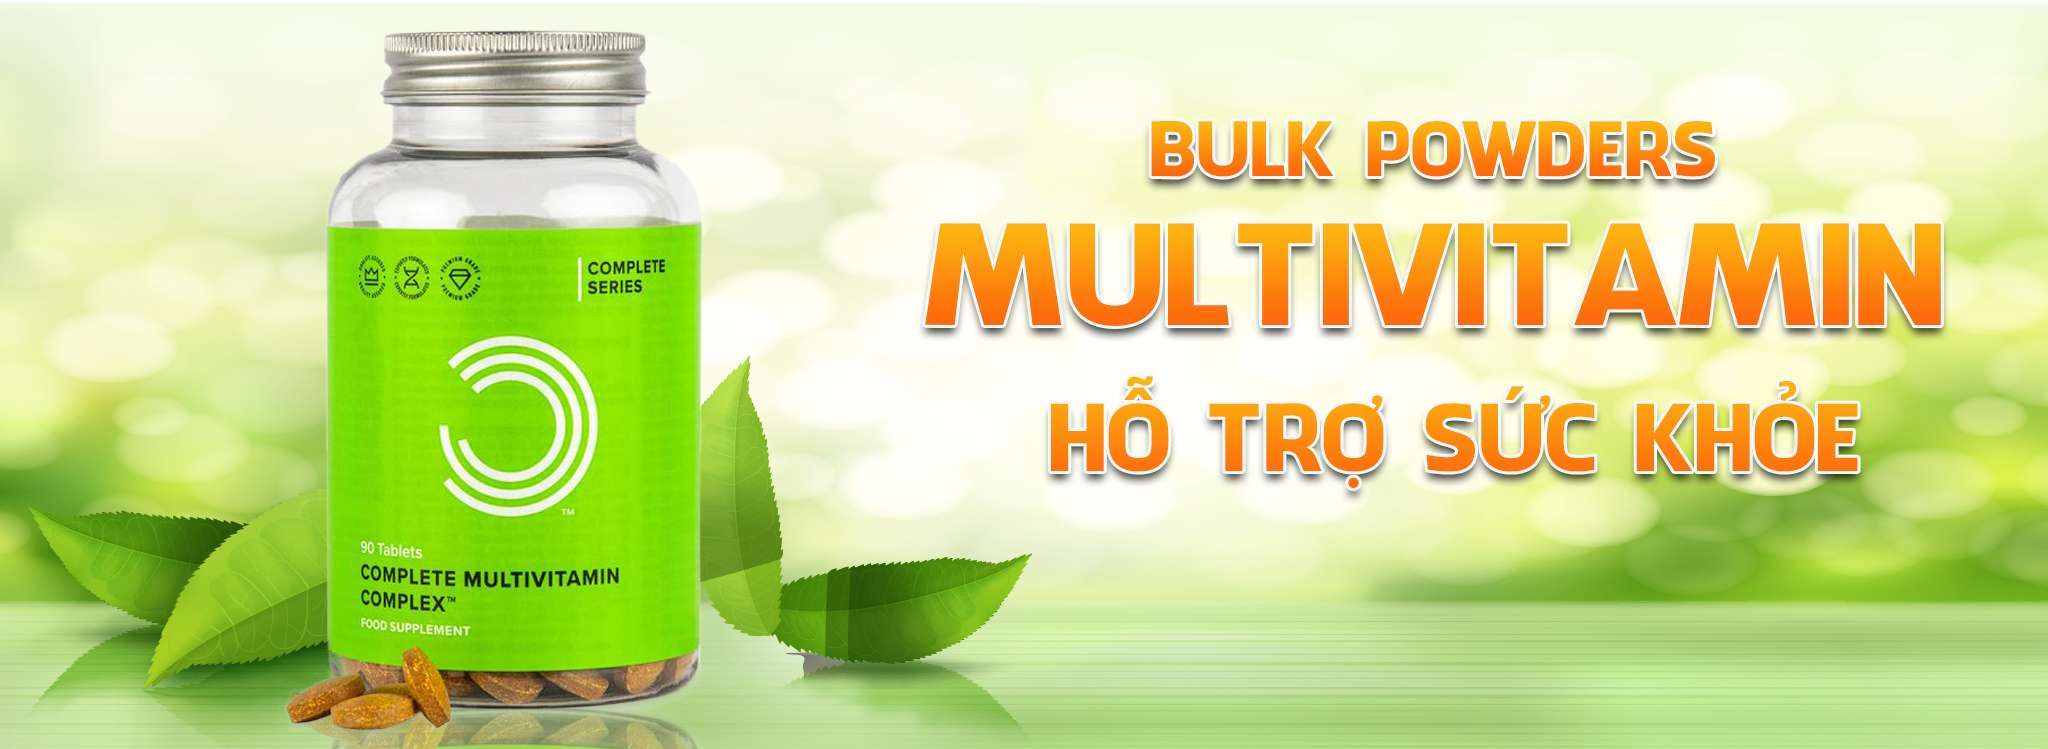 complete multivitamin ho tro suc khoe dinh duong (1)